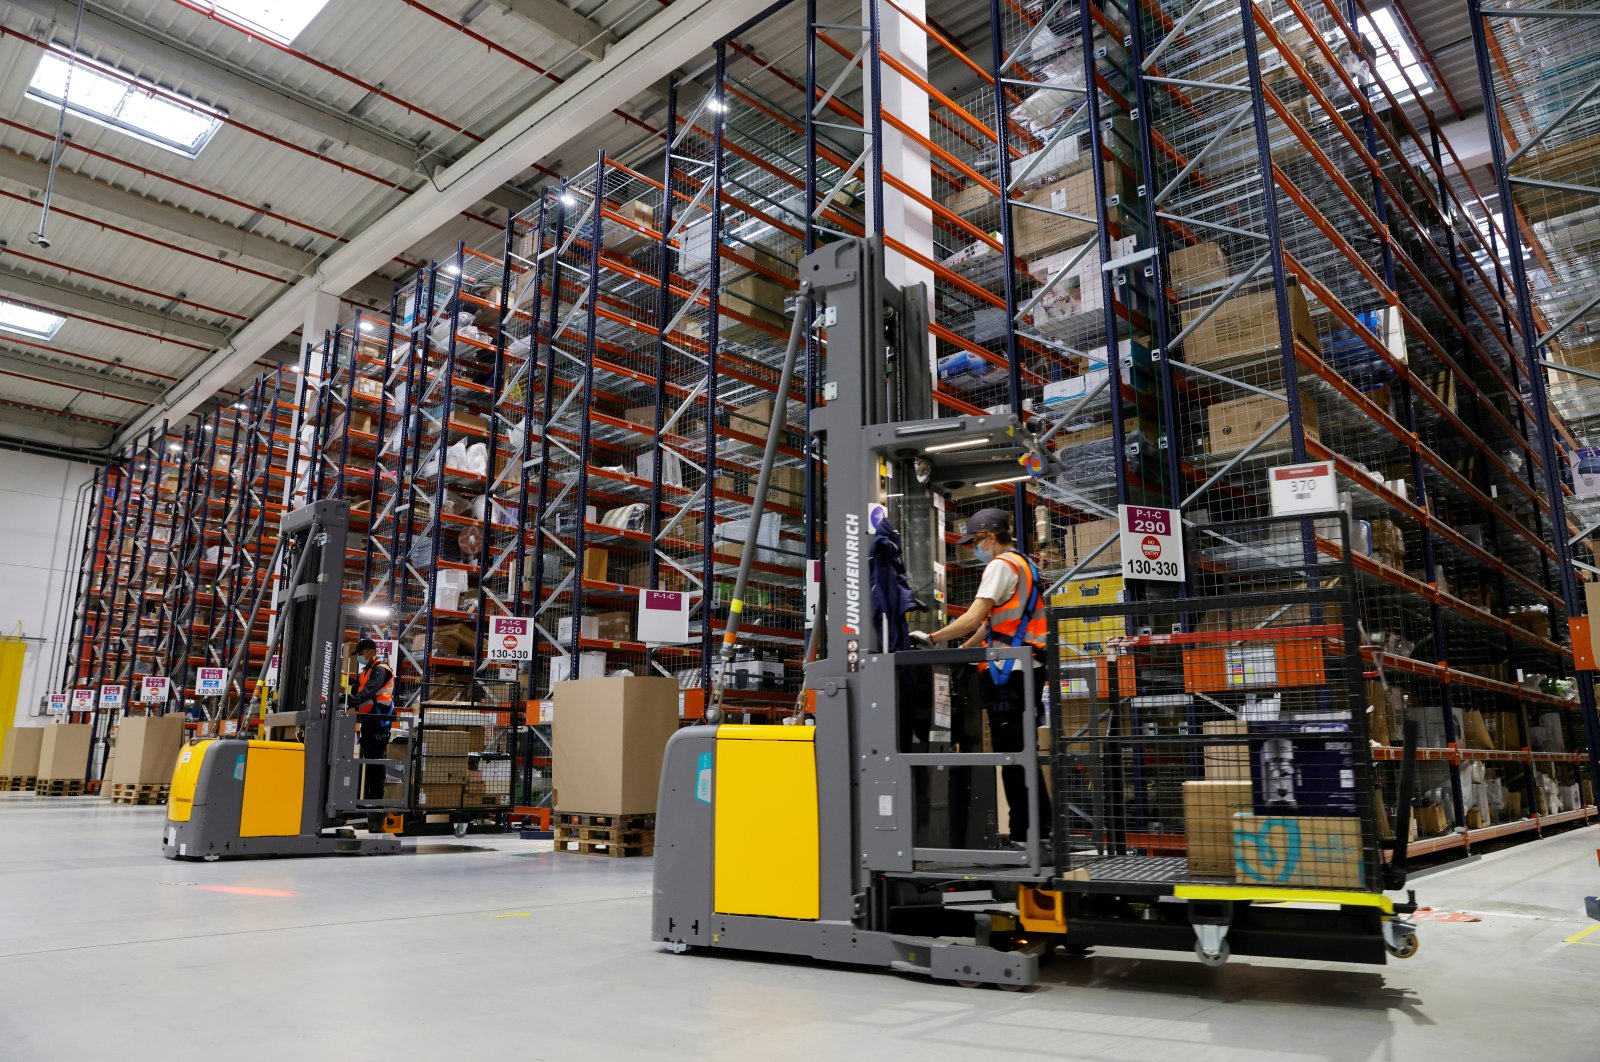 Employees work at the Amazon fulfilment center in Boves near Amiens, France, Sept. 29, 2020. (Reuters File Photo)